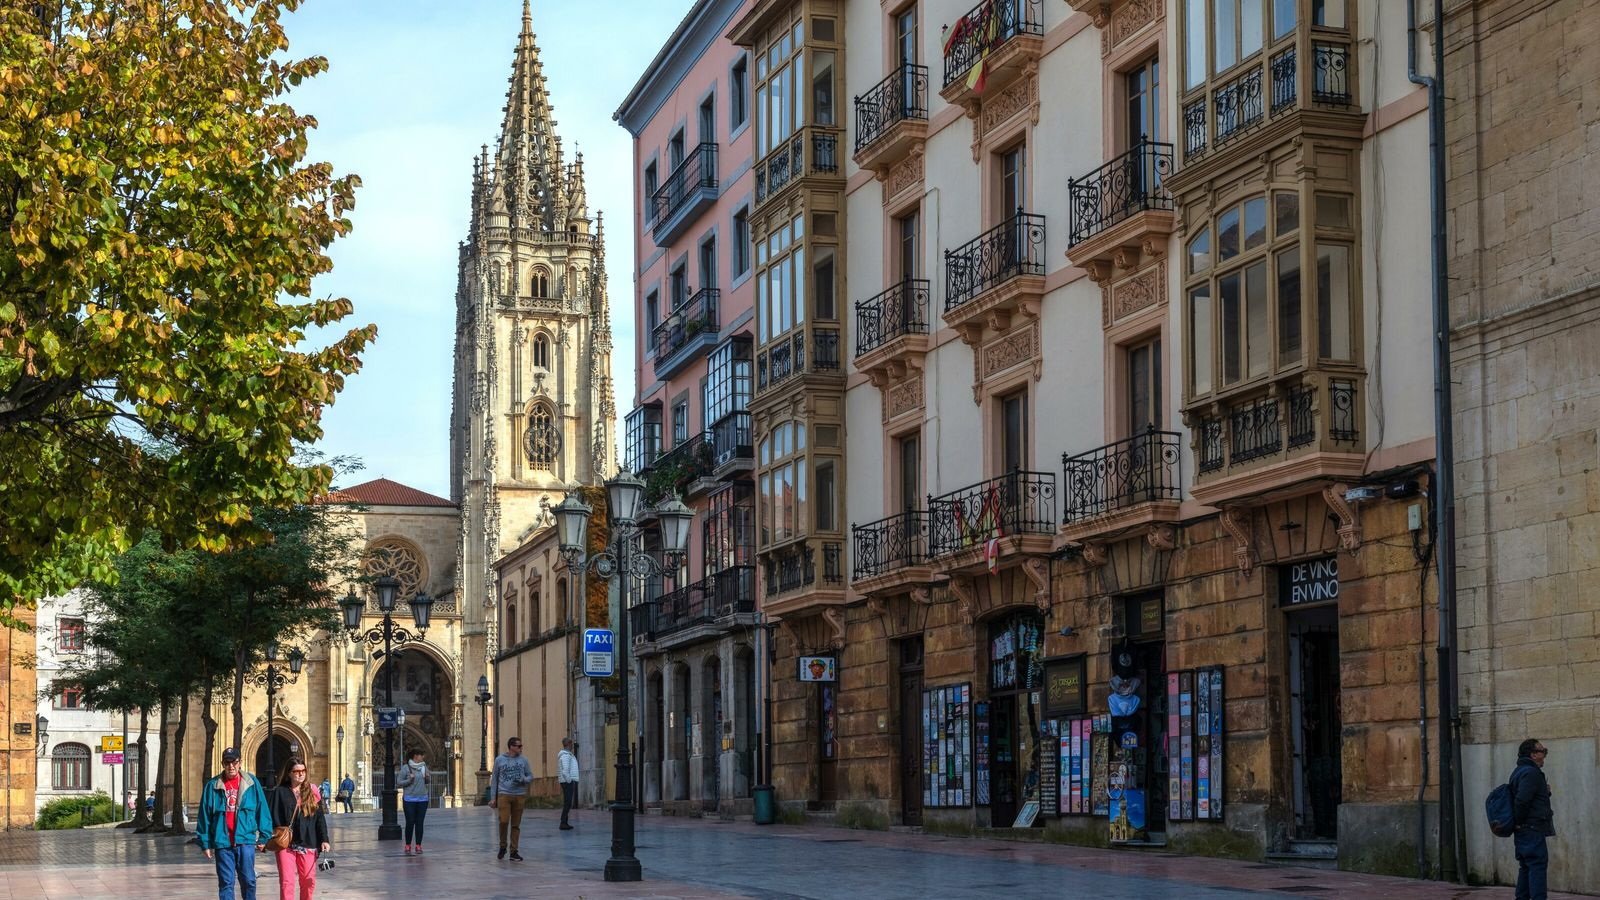 The grand cathedral dominates the old town of Oviedo, one of Spain's most beguiling regional capitals.